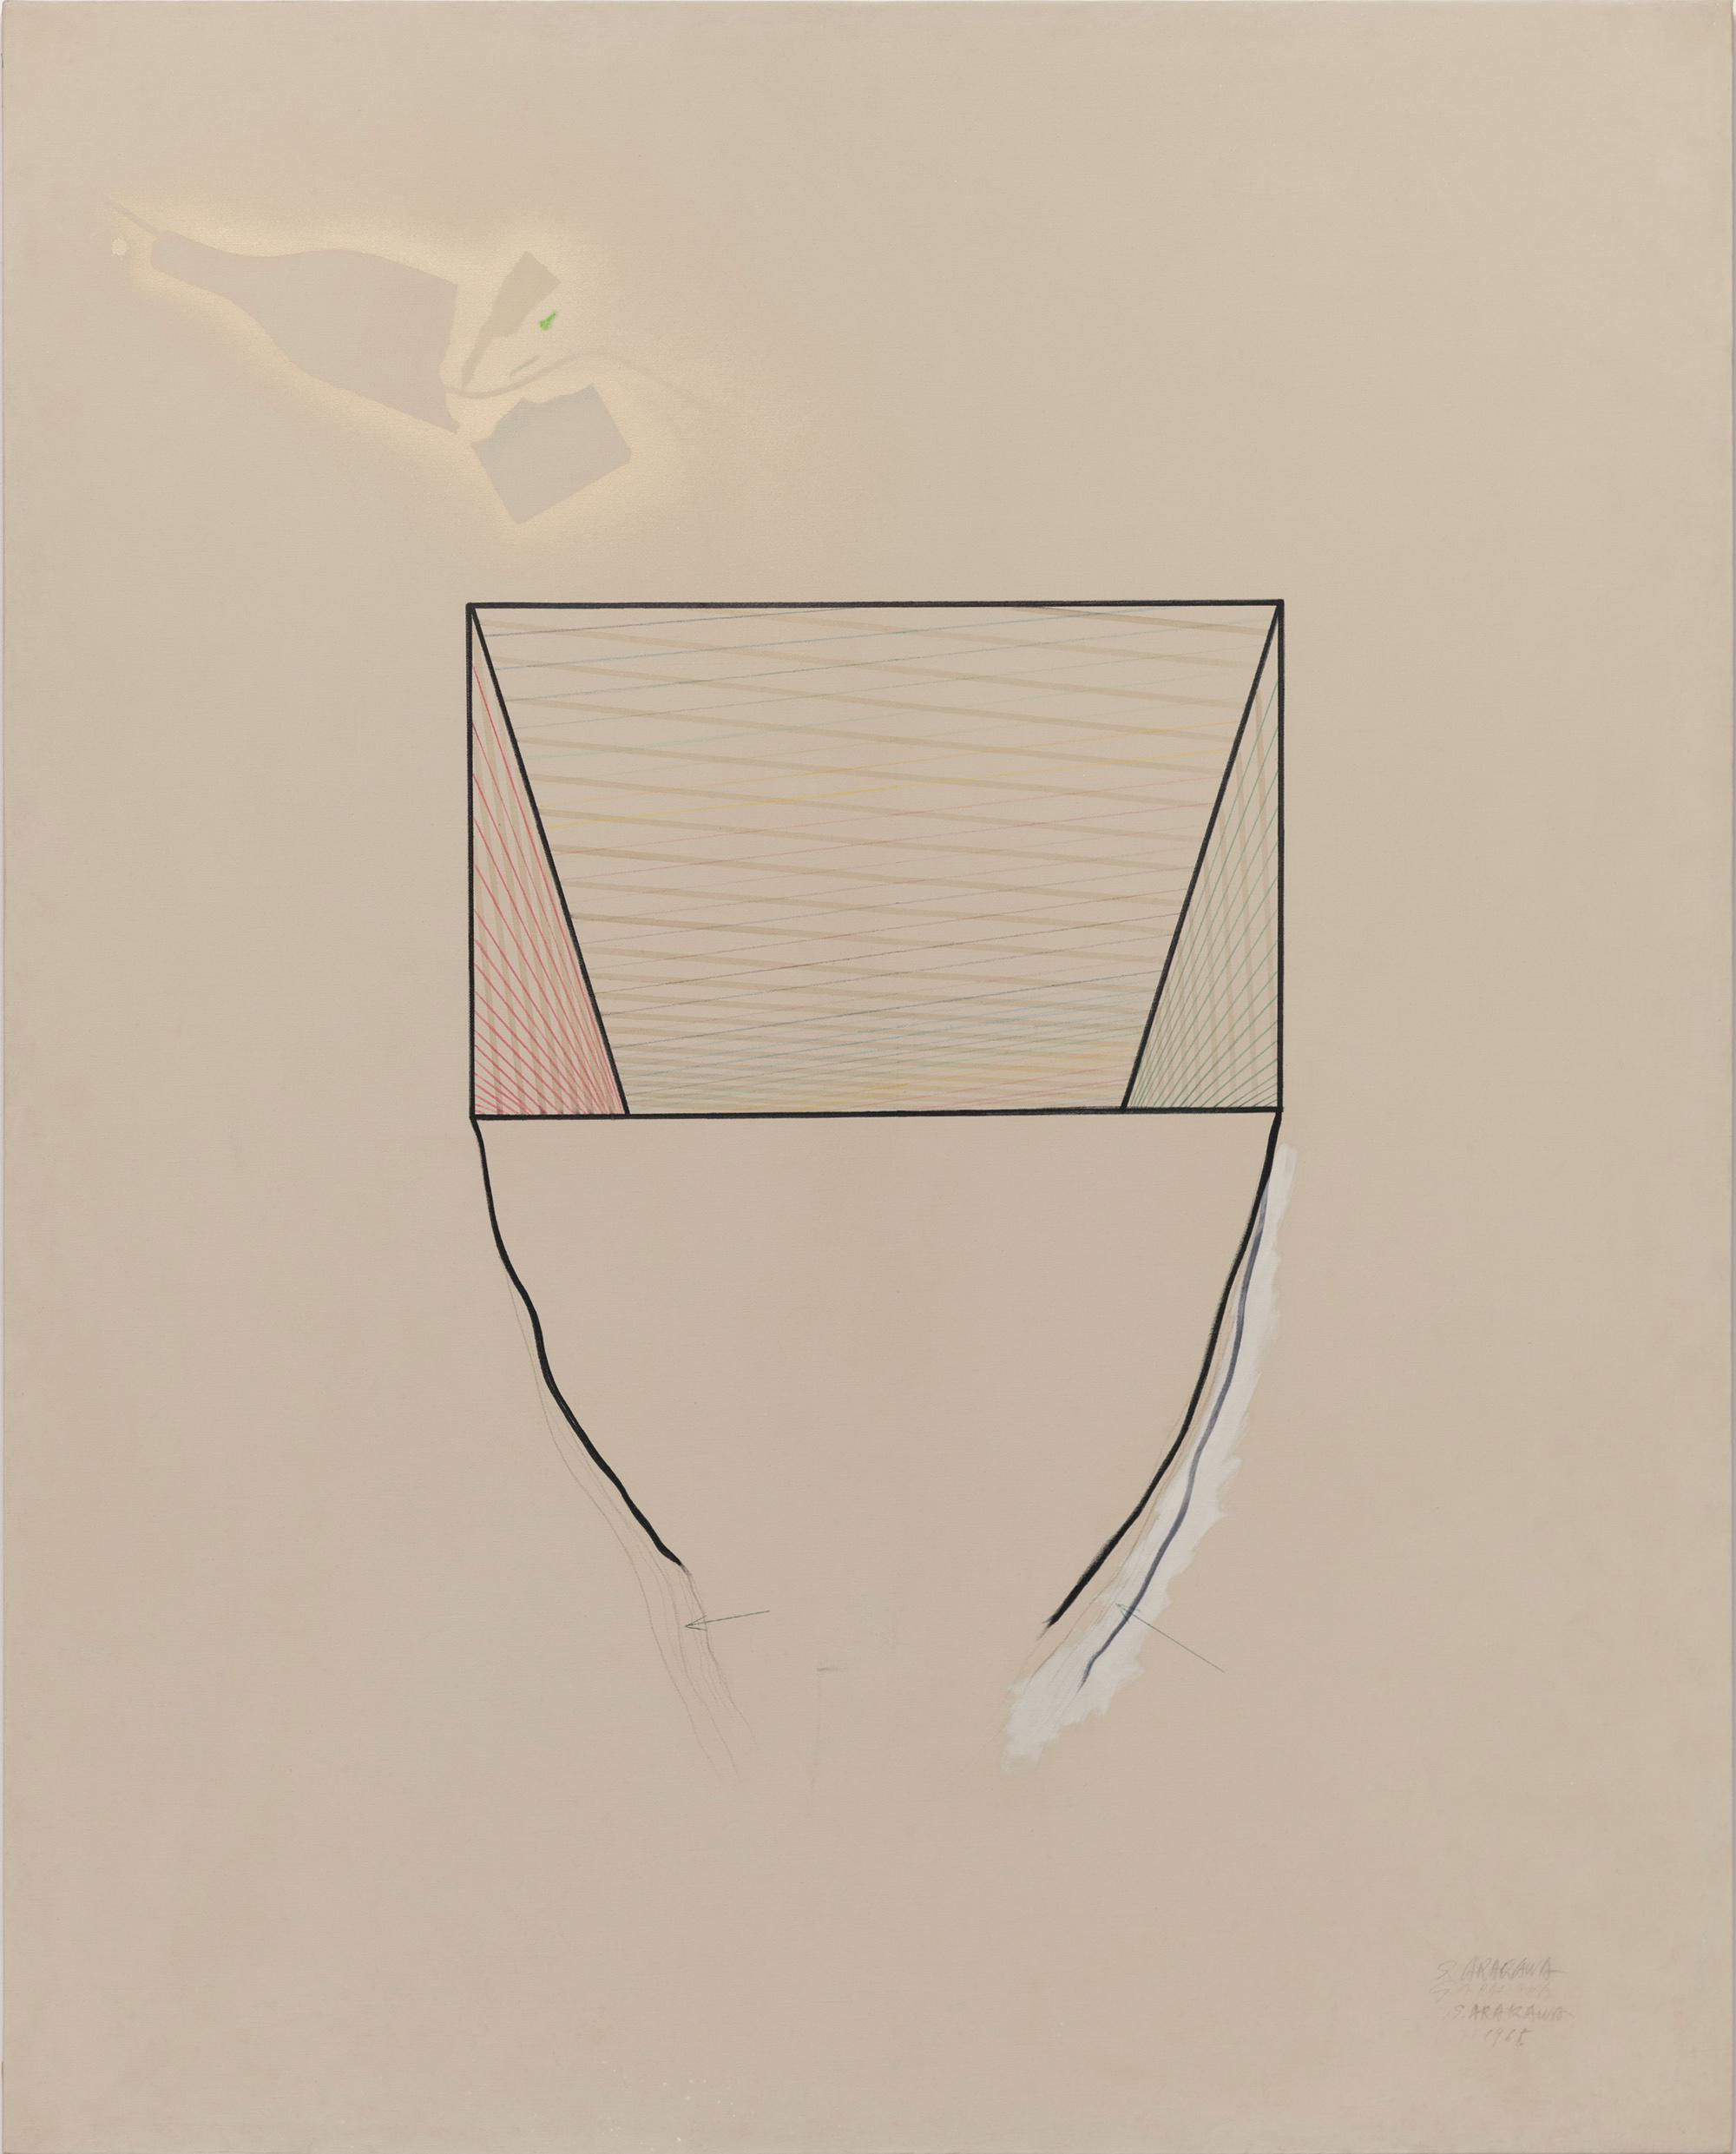 Arakawa, BOTTOMLESS No. 1, 1965, Ink and oil on canvas, 149.7 x 120 x 2.5 cm © 2020 Estate of Madeline Gins. Reproduced with permission of the Estate of Madeline Gins